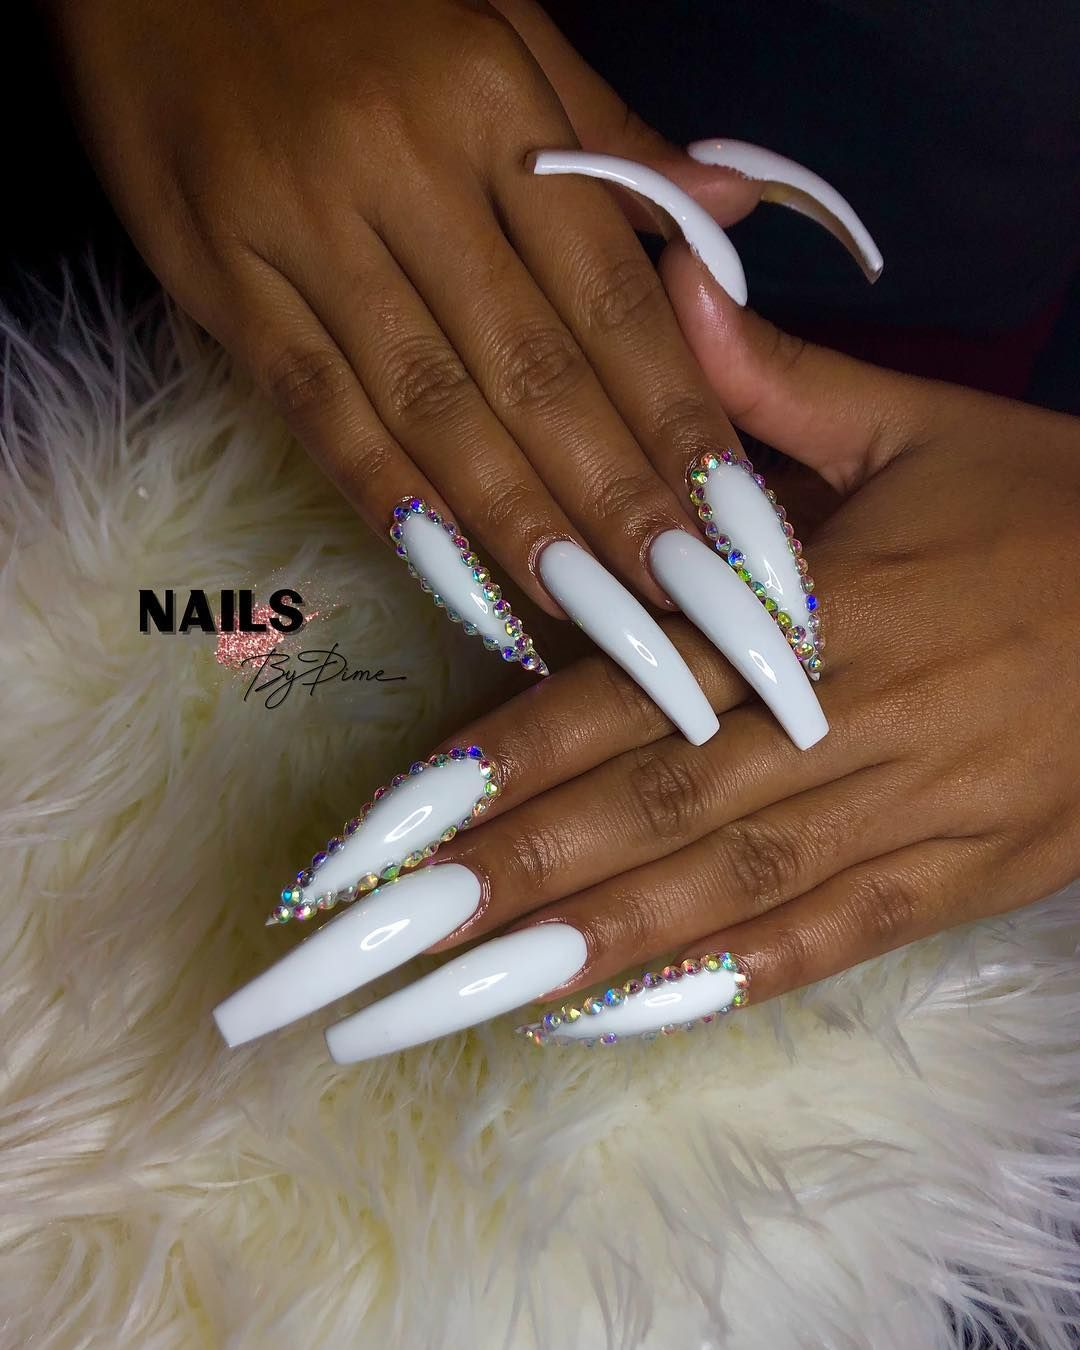 """757 Nails by Dime💅🏽 on Instagram: """"my sis @officialprettysavage_ always comes thru to show love🥴💕 • • • • •  #clawsup  #757nailtech #nailsofinstagram #odunails #nailsbydime…"""""""